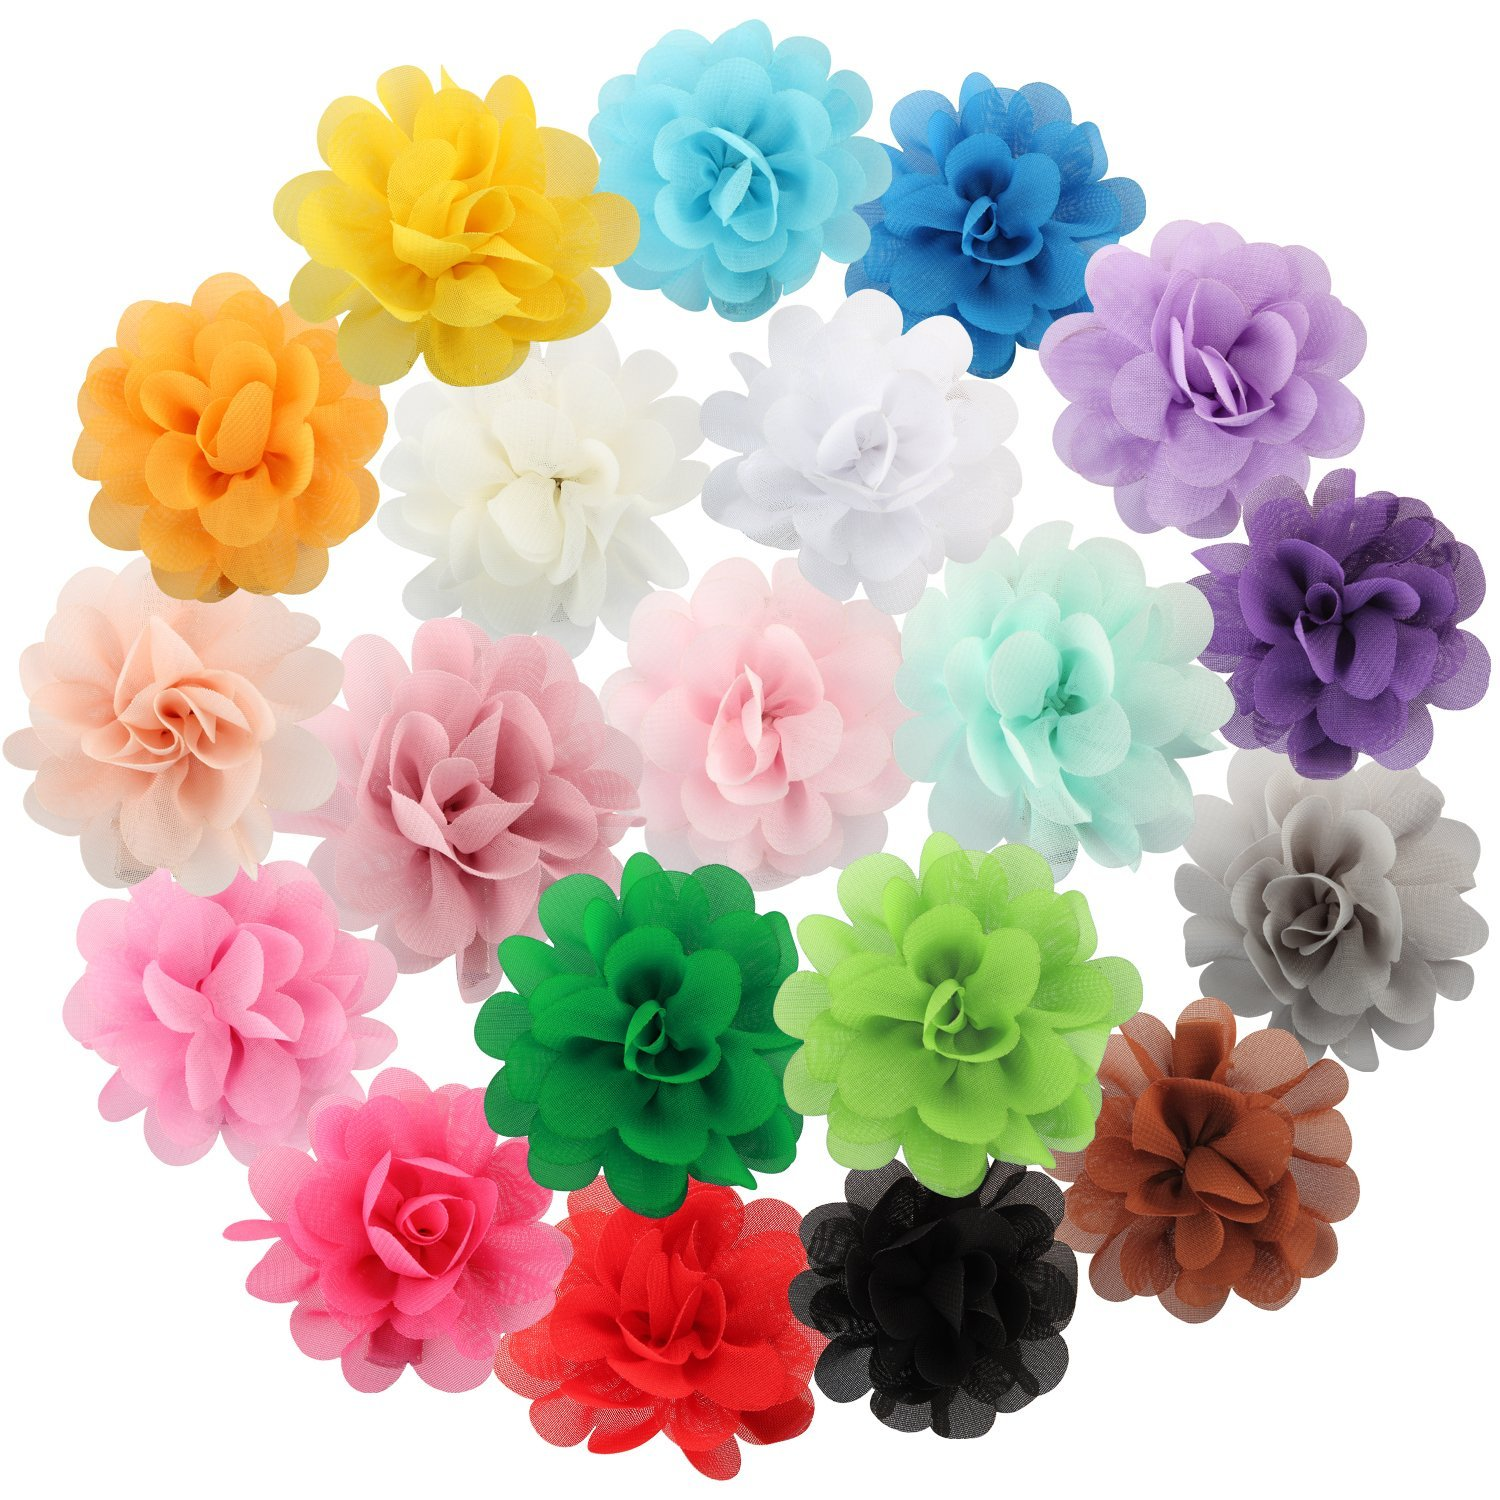 Discoball 20pcs Multicolor Chiffon Flower Hair Clips Alligator Clip for Wedding Party Barrettes Accessories Kids Baby Girls Flower Headwear